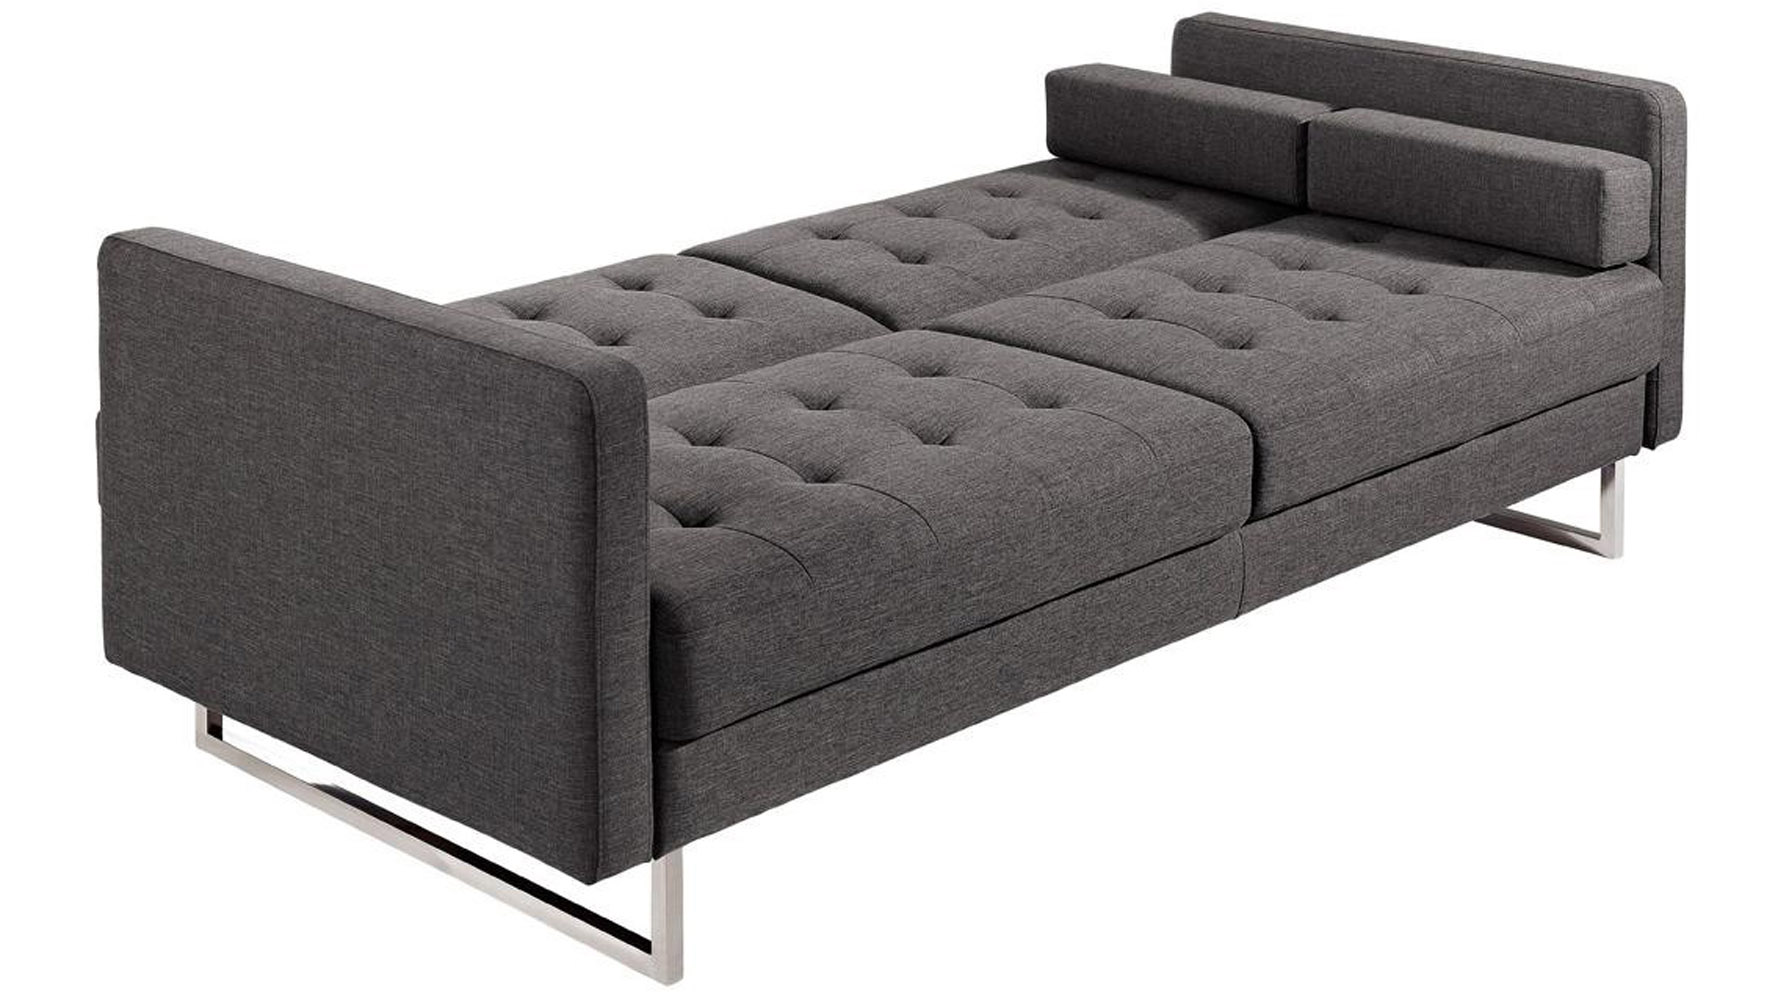 abbie sofa navy standard depth of a table fabric with chrome legs home the honoroak